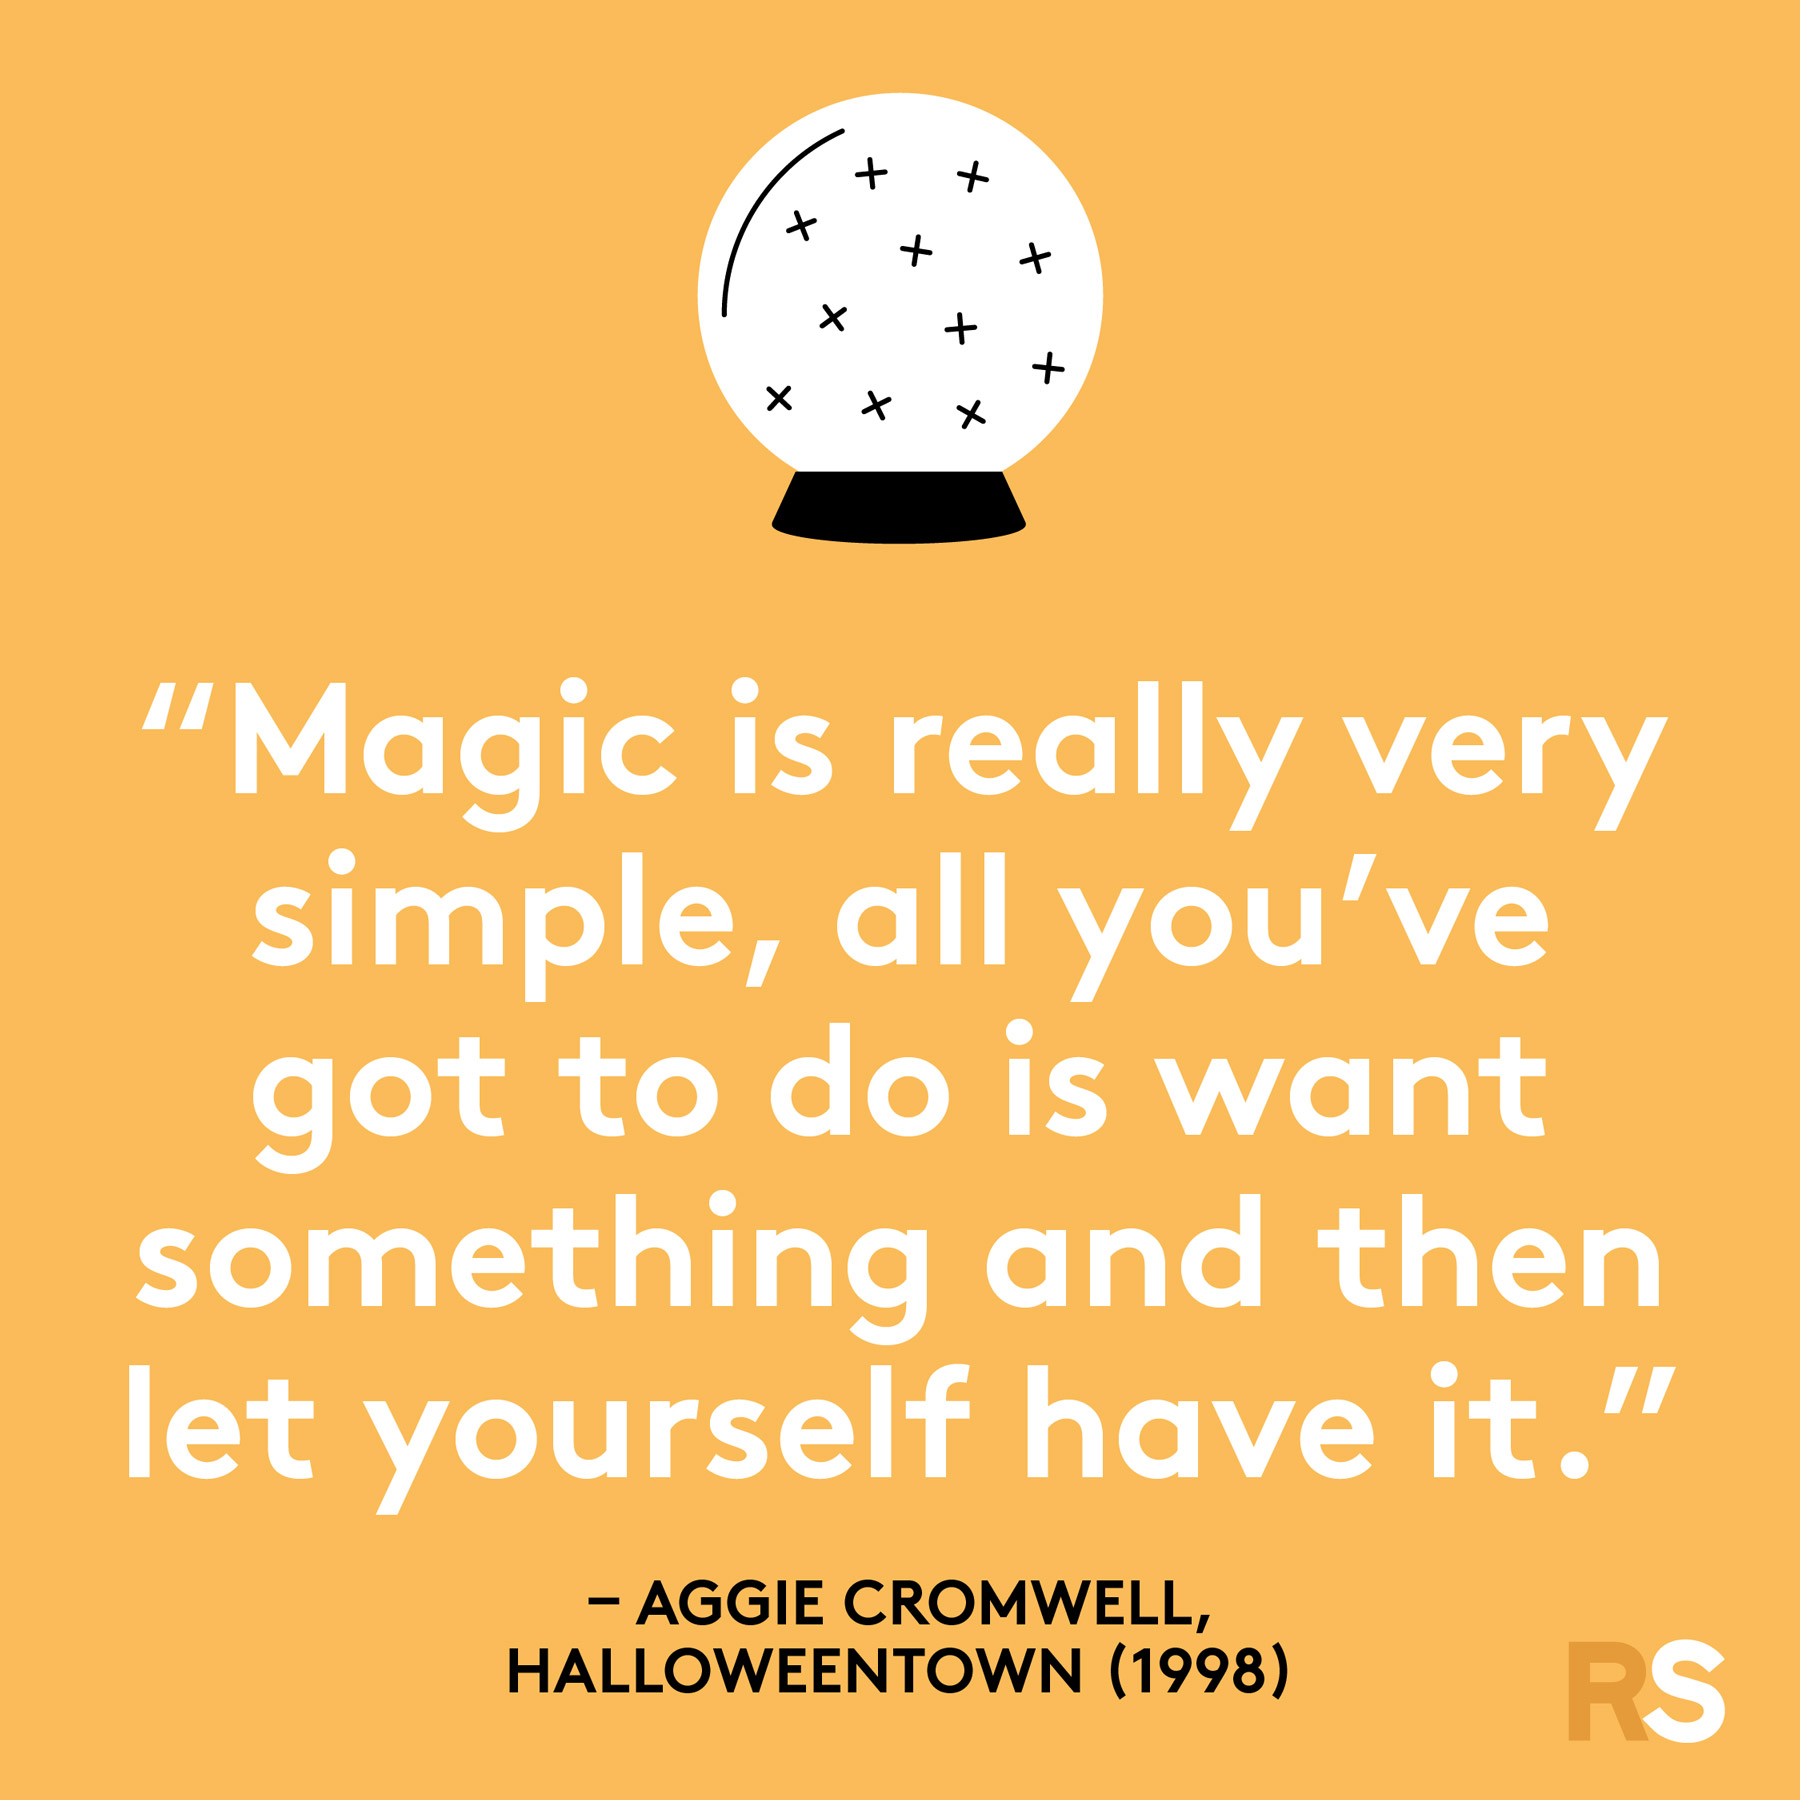 13 Best Famous Halloween Quotes, Sayings, Phrases | Real Simple